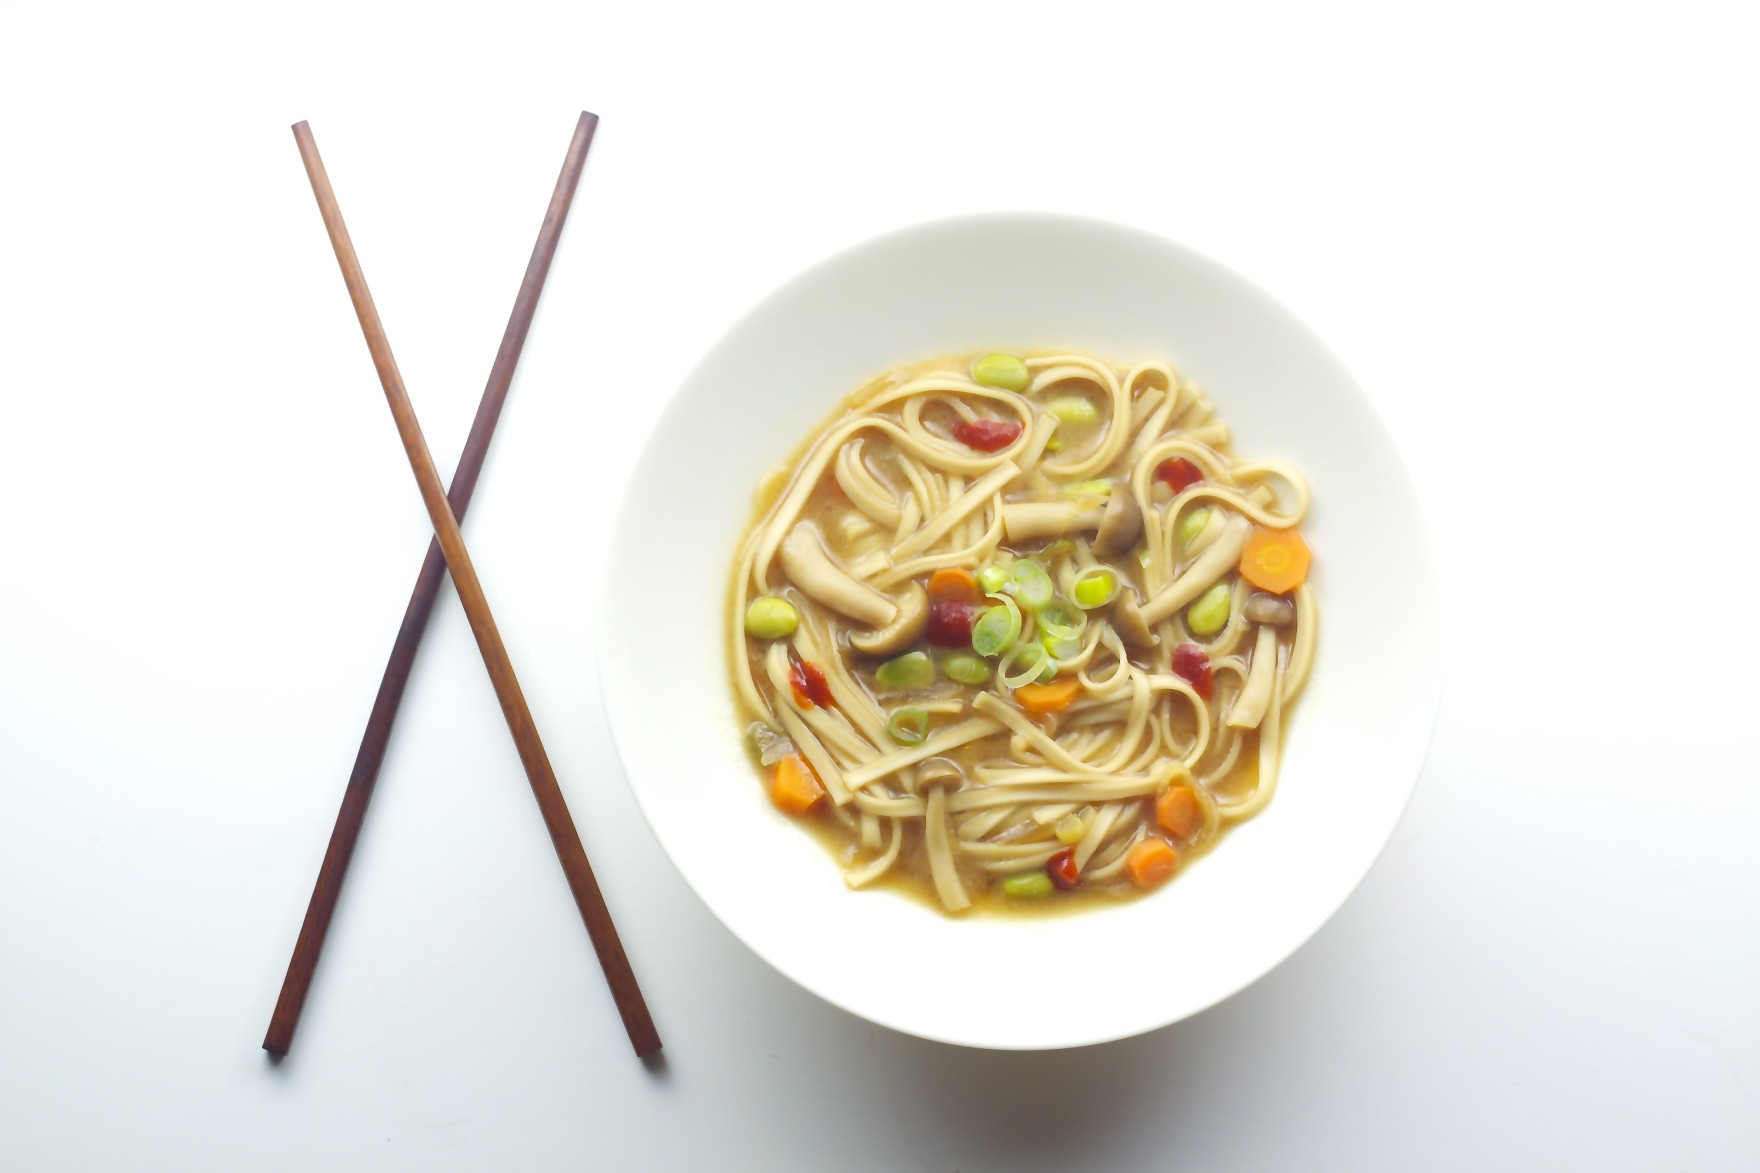 vegan vegetable udon soup miso carrots mushrooms edamame bored vegetarian